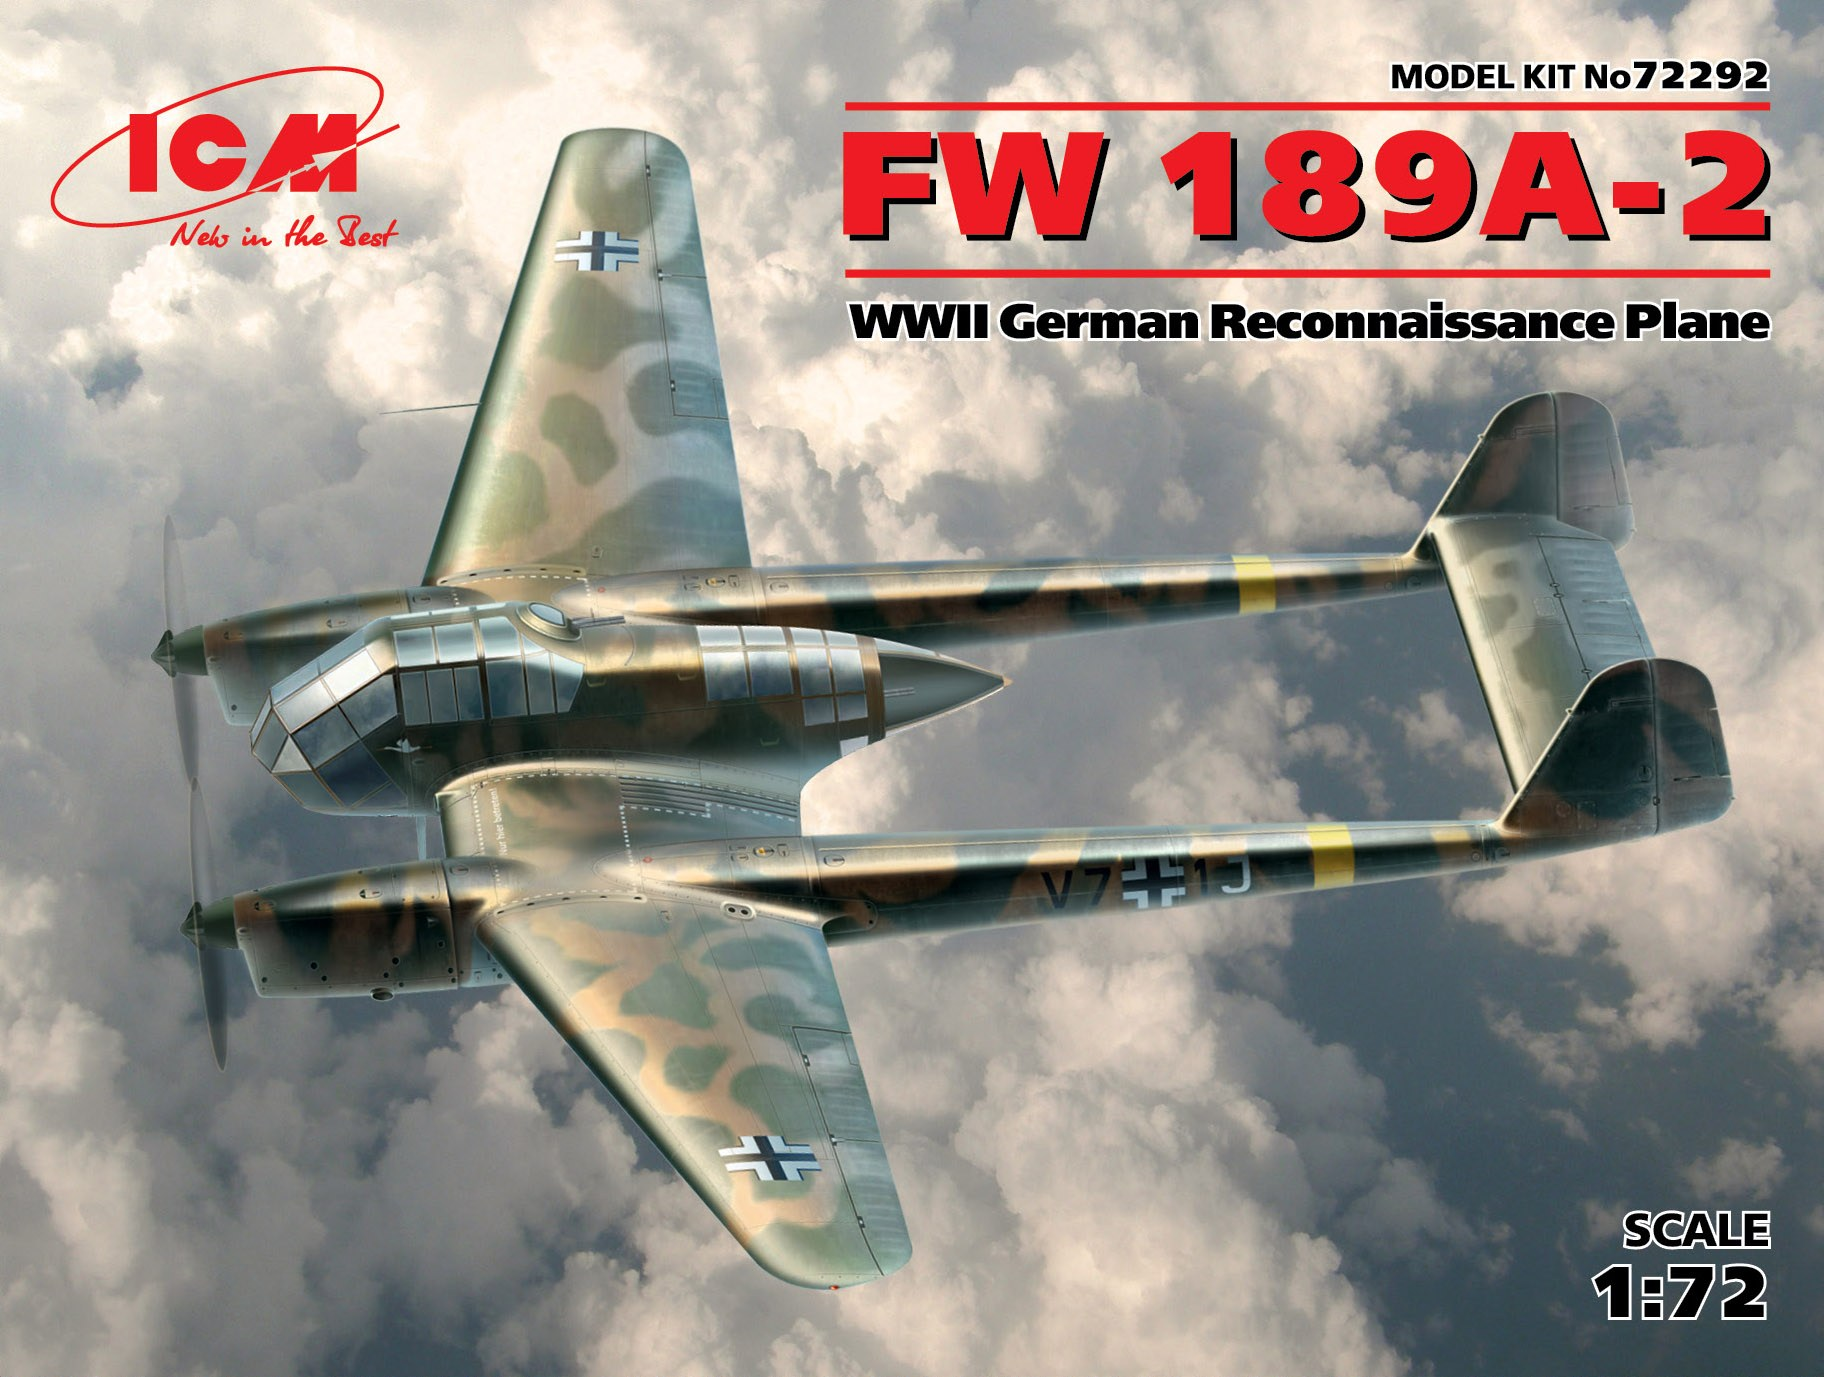 ICM FW 189A-2, WWII German Reconnaissance Plane